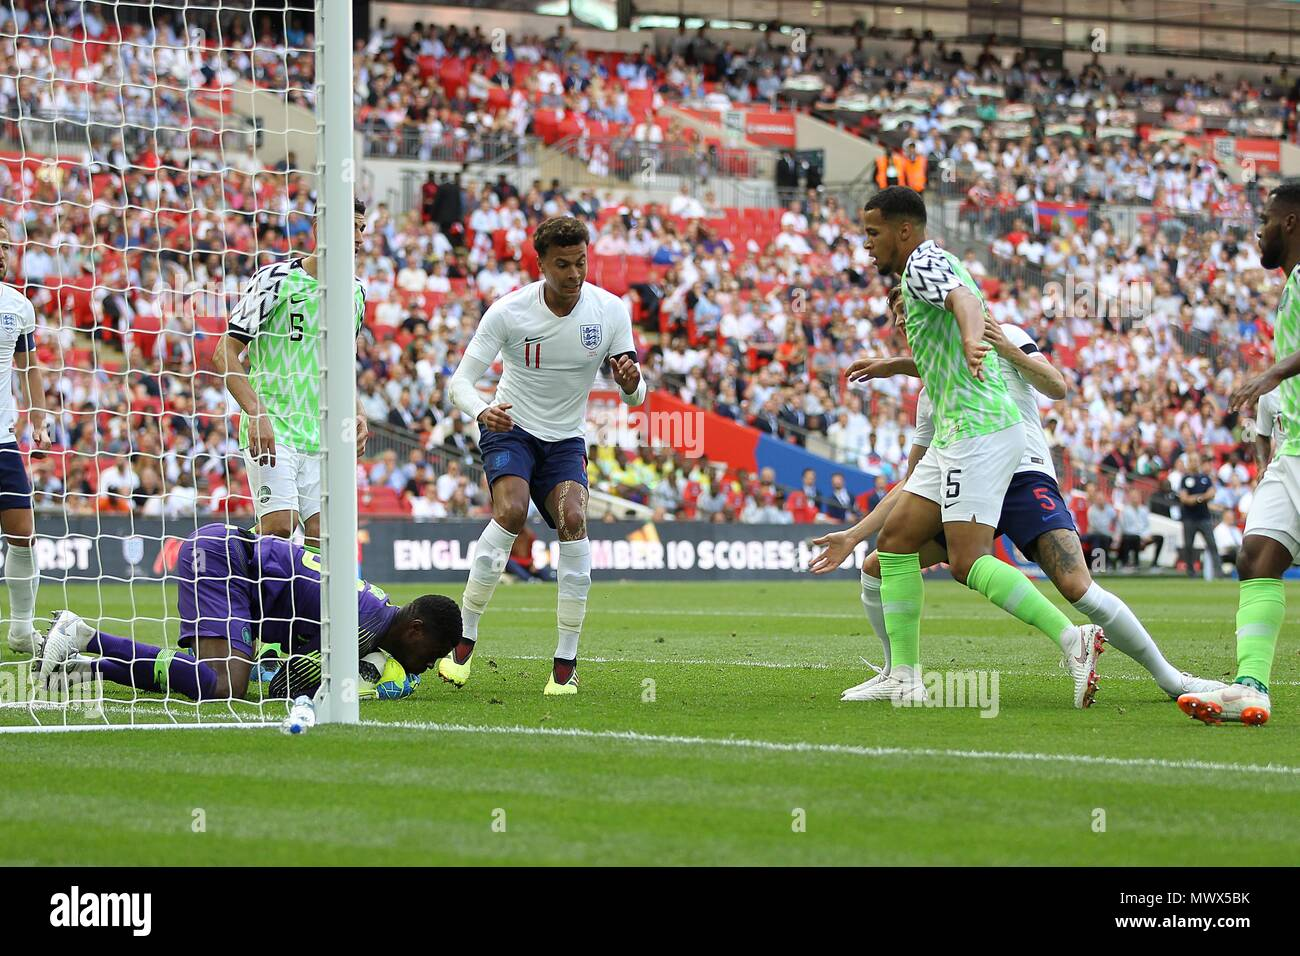 London, UK. 2nd June 2018. London, UK. 2nd June 2018.London, UK. 2nd June 2018. Francis Uzoho of Nigeria saves at the feet of Dele Alli of England during the International Friendly match between England and Nigeria at Wembley Stadium on June 2nd 2018 in London, England. (Photo by Matt Bradshaw/phcimages.com) Credit: PHC Images/Alamy Live News Stock Photo